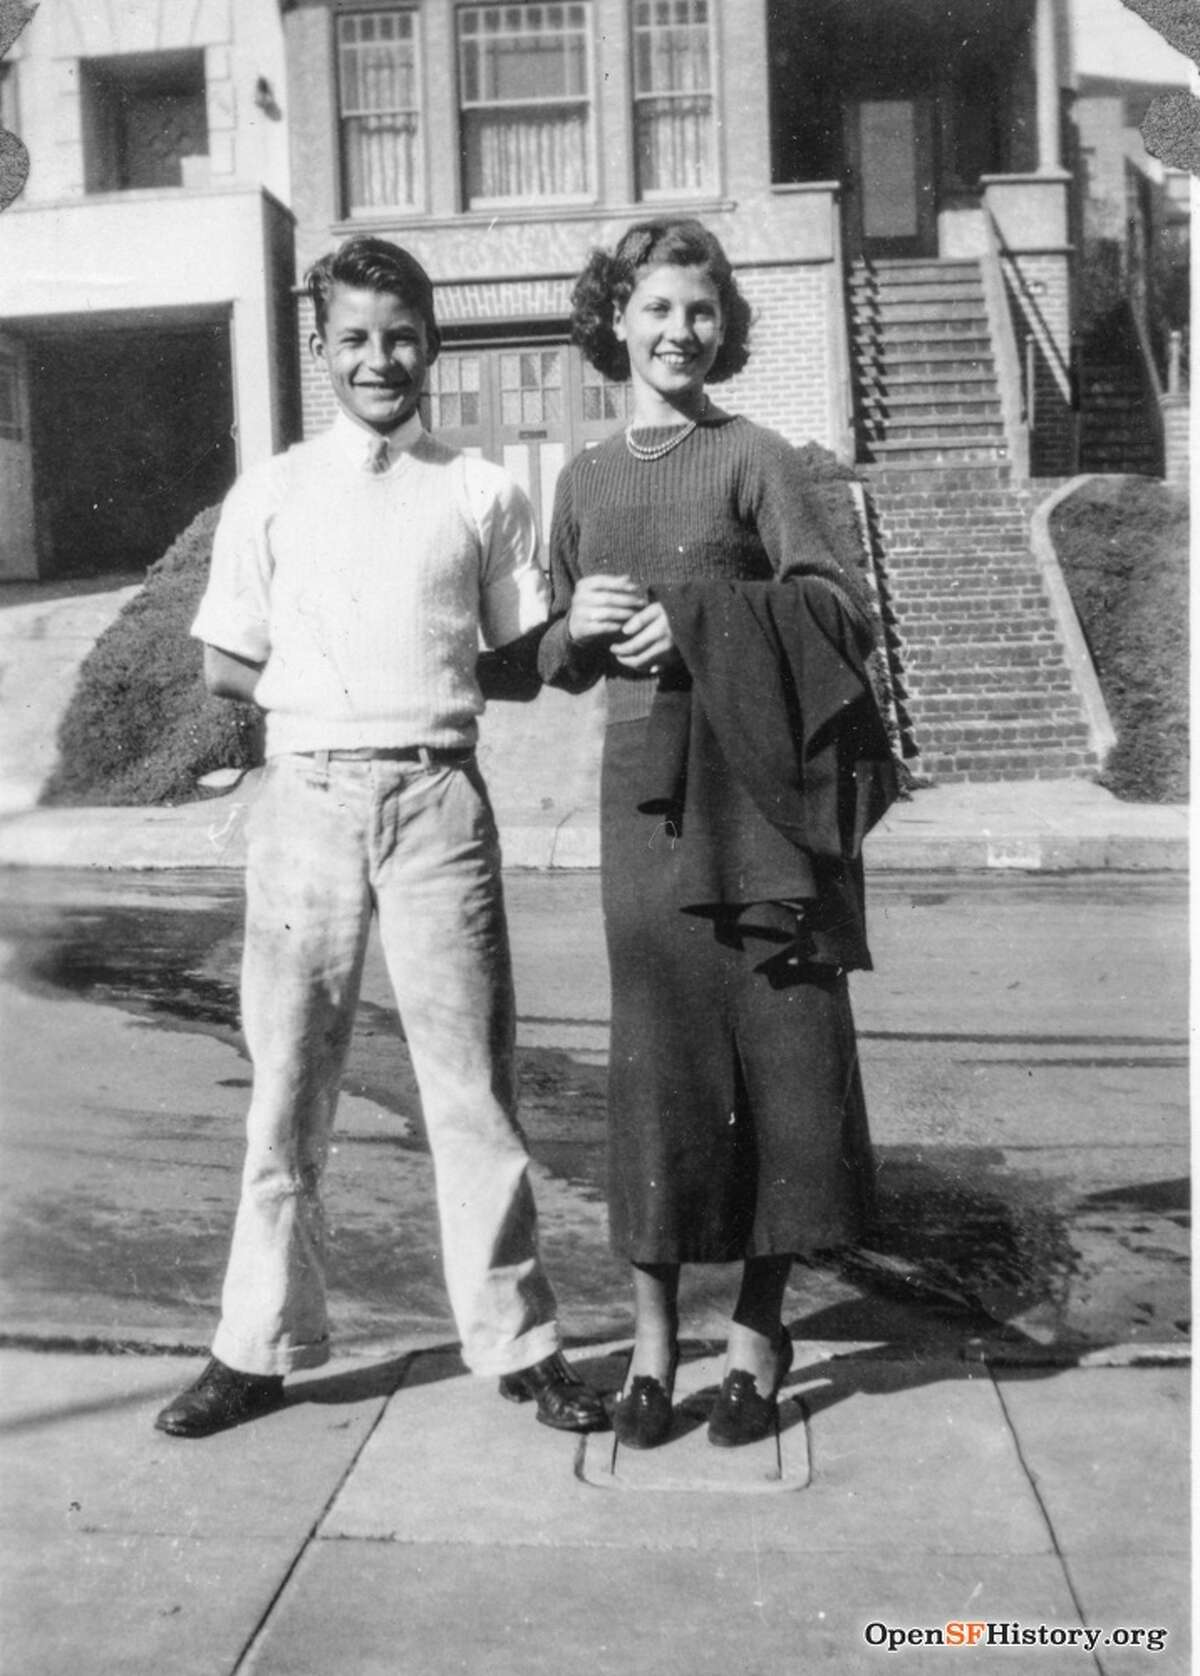 A couple on Valentine's Day 1937 in San Francisco.